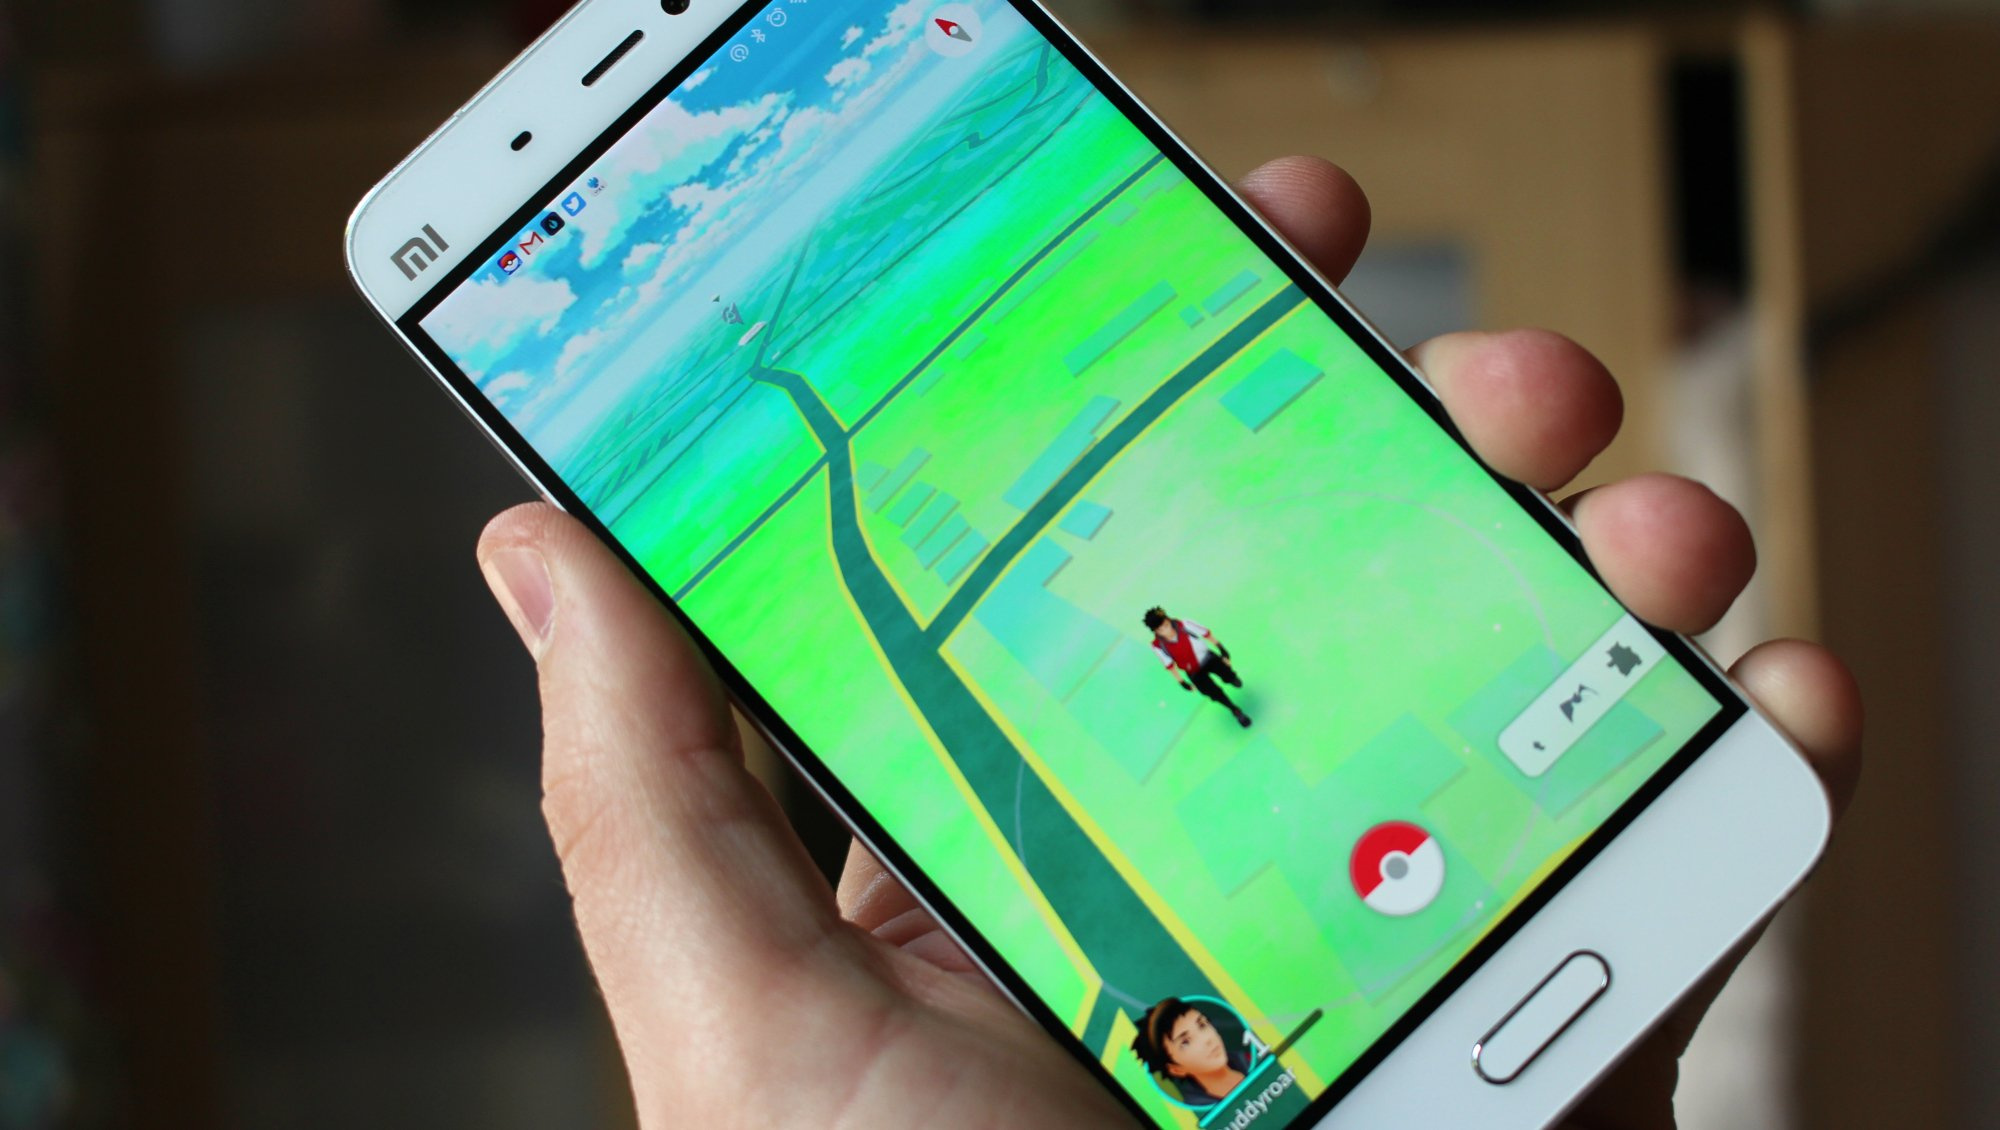 Chinese Fearful of Pokemon Go and Foreign Attacks